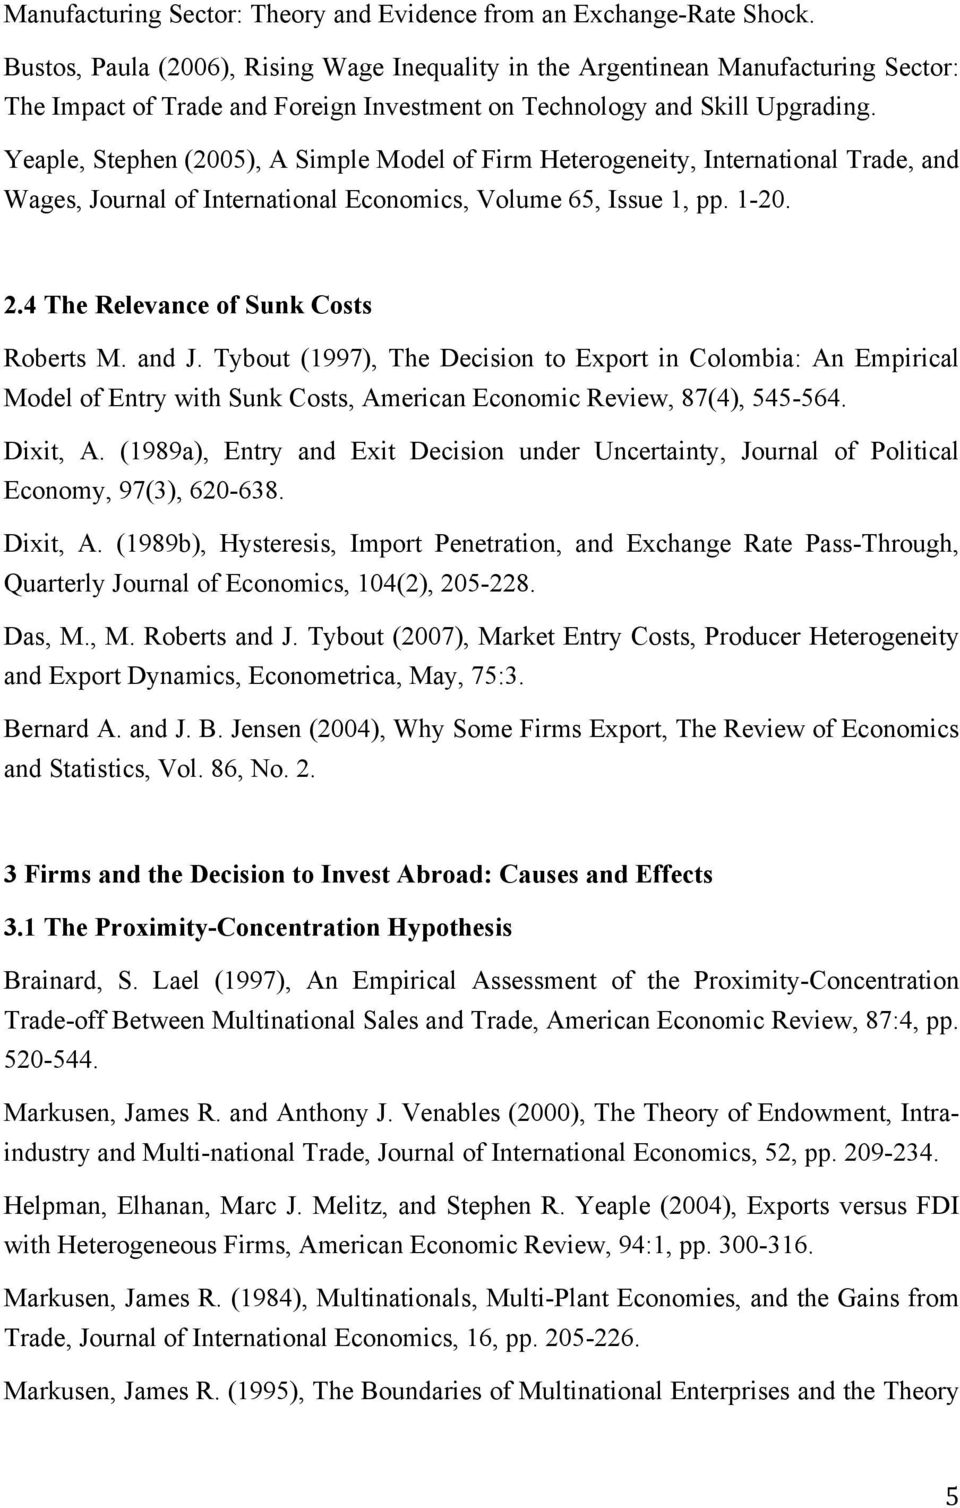 Yeaple, Stephen (2005), A Simple Model of Firm Heterogeneity, International Trade, and Wages, Journal of International Economics, Volume 65, Issue 1, pp. 1-20. 2.